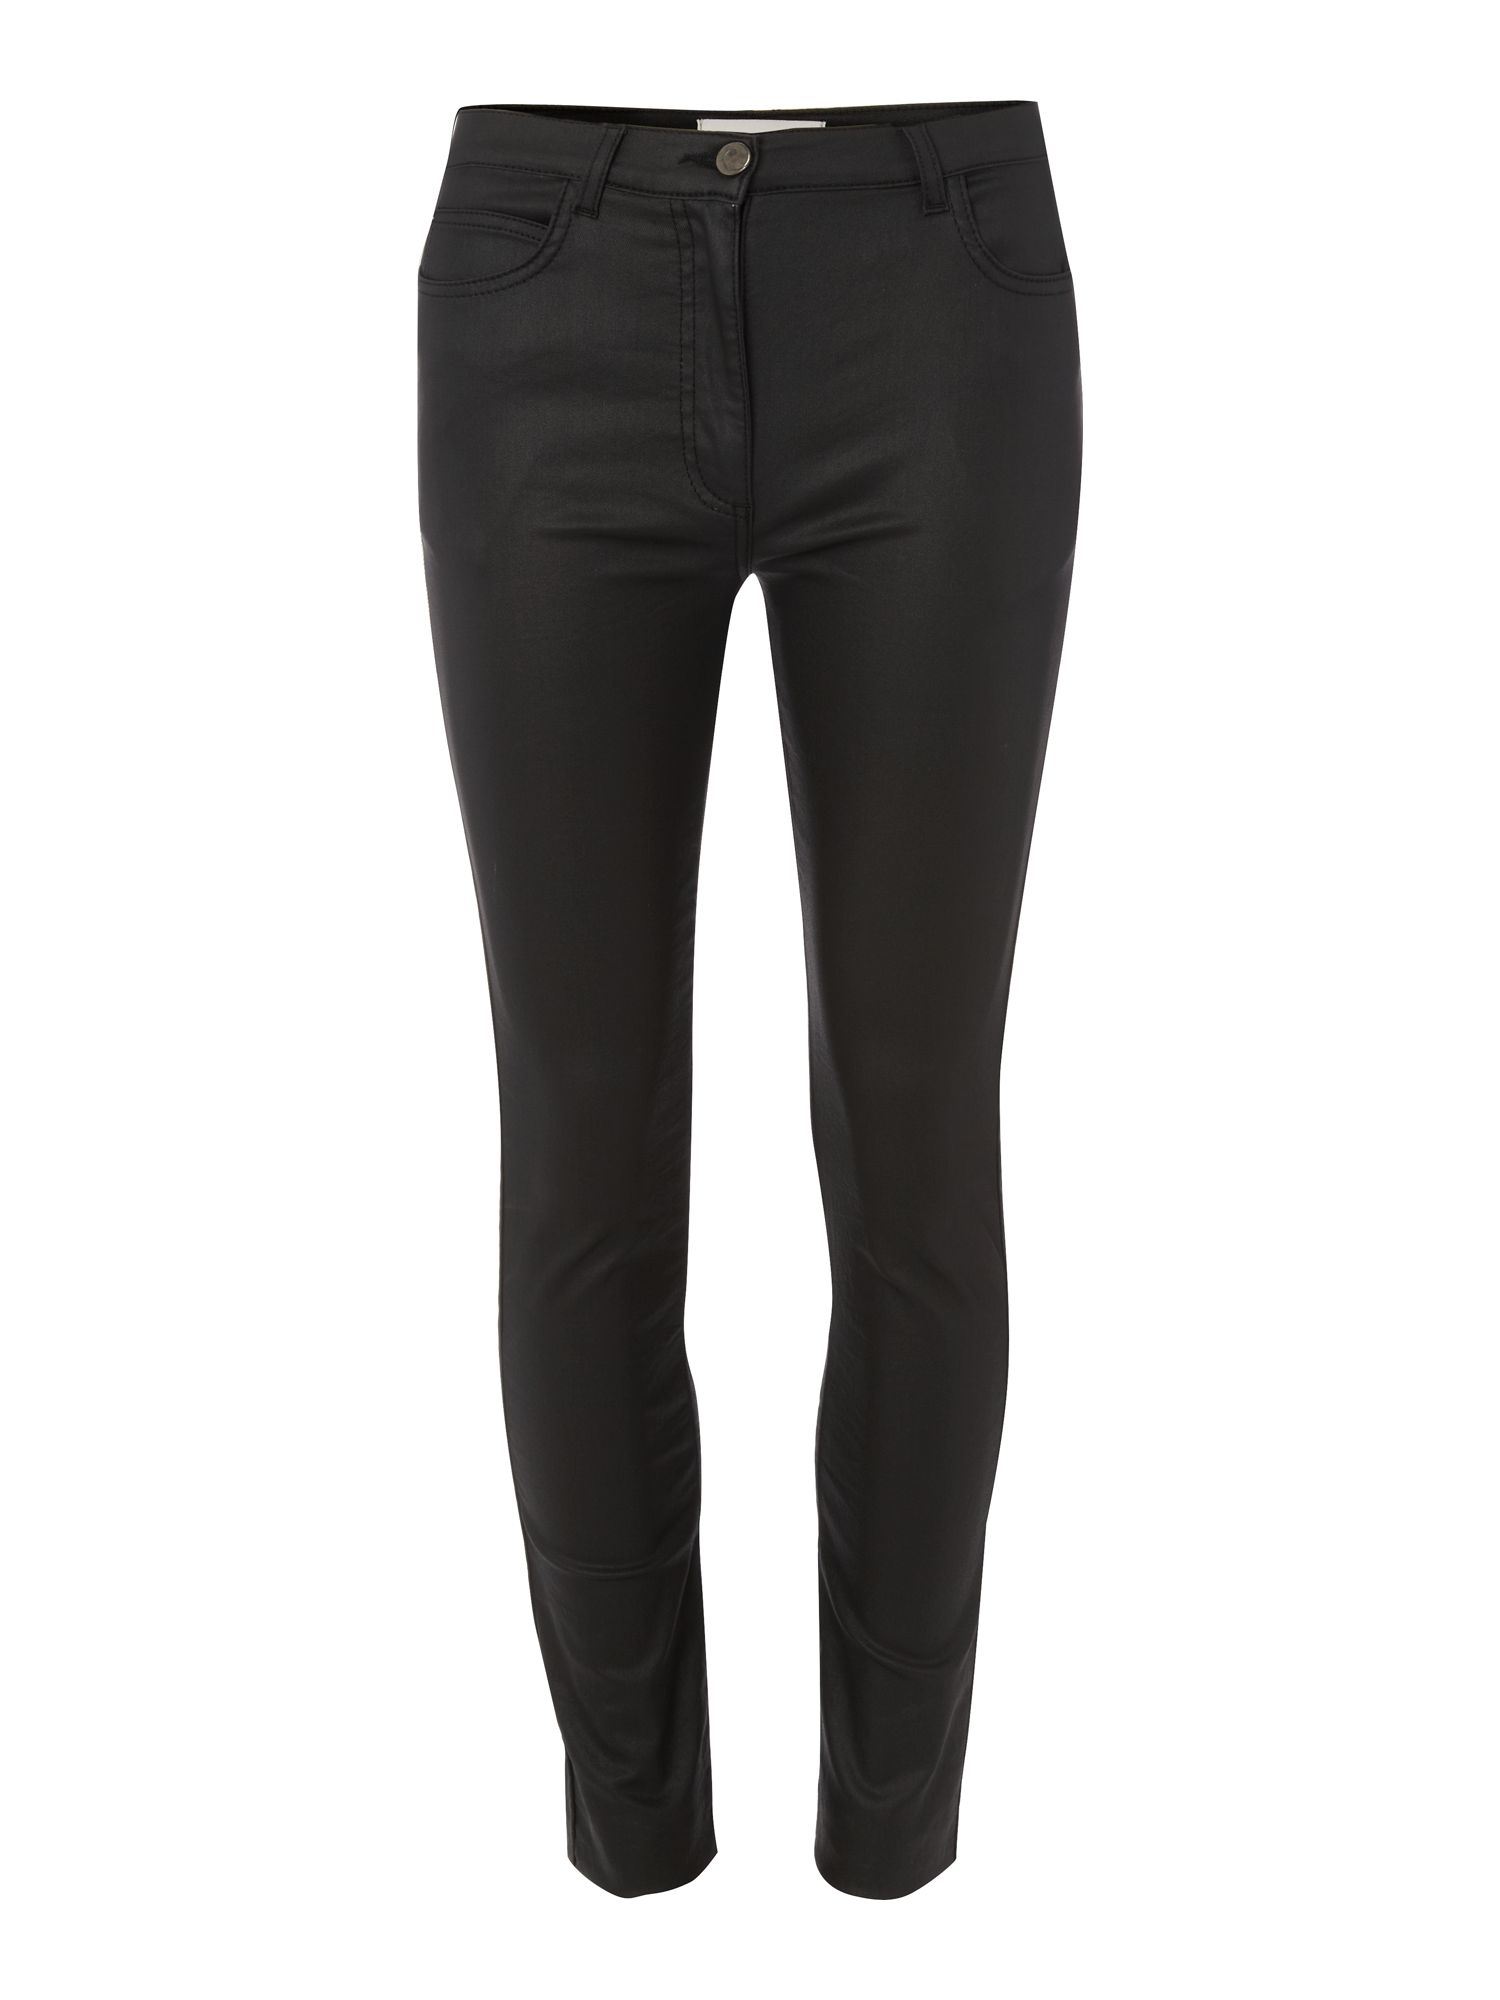 The High-Waist Leather Coated Skinny Jean